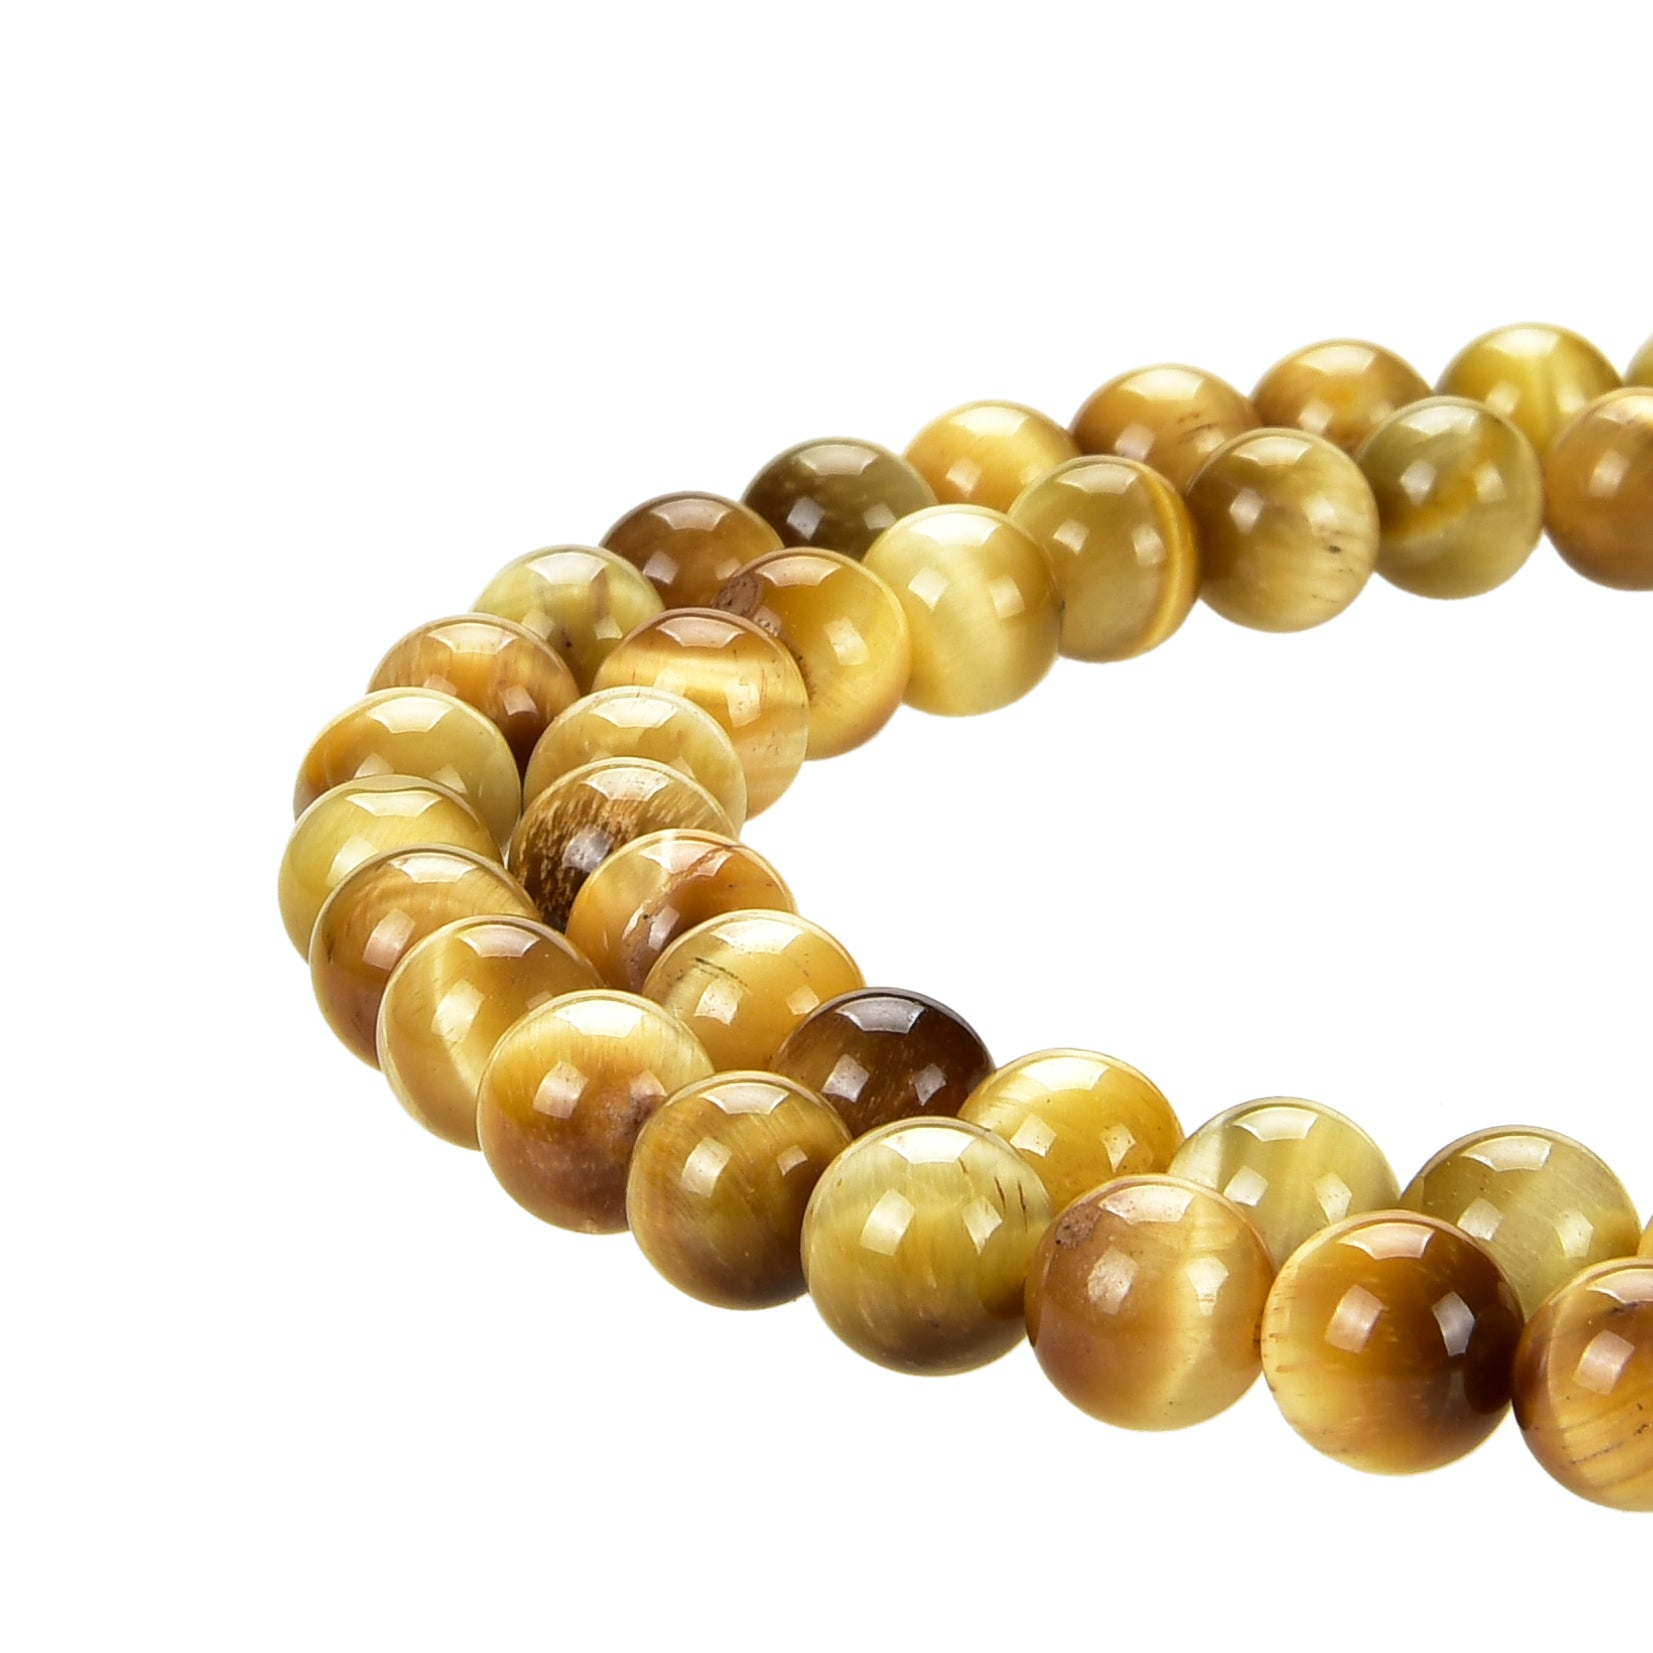 Honey Tiger Eye Gemstone Beads Round